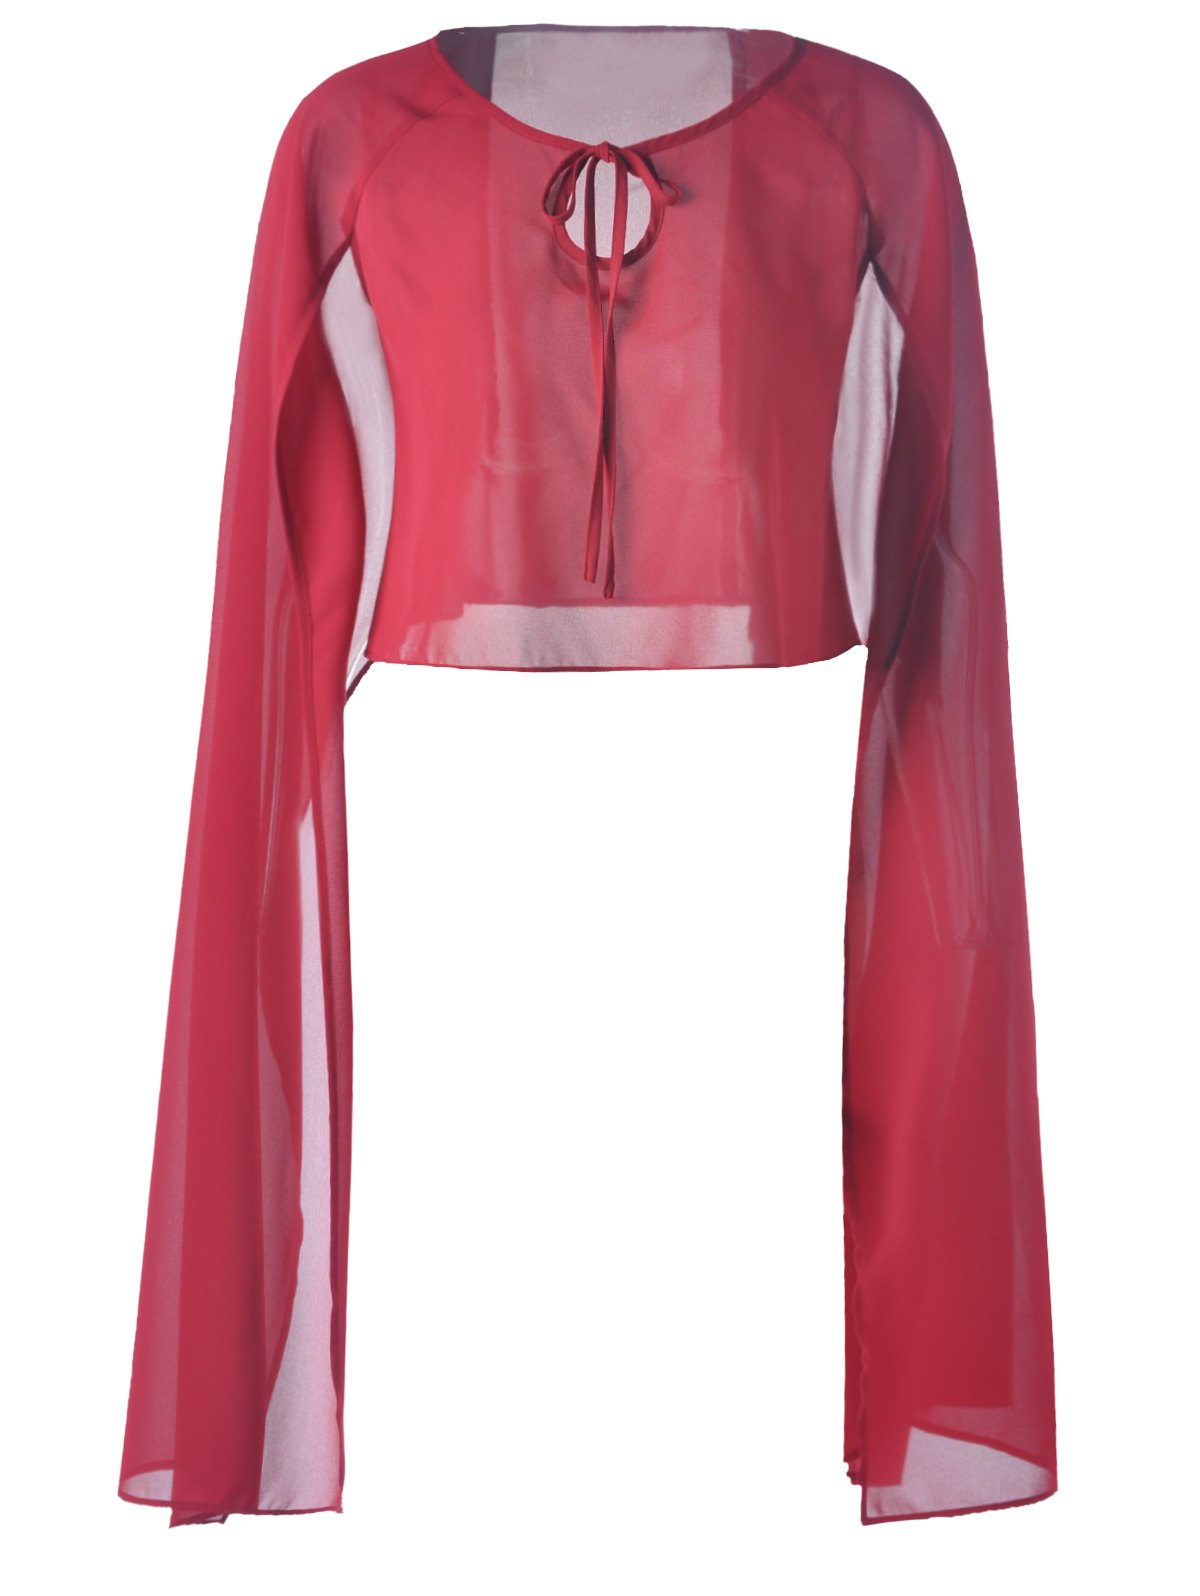 Fashionable Pure Color Chiffon Top For Women